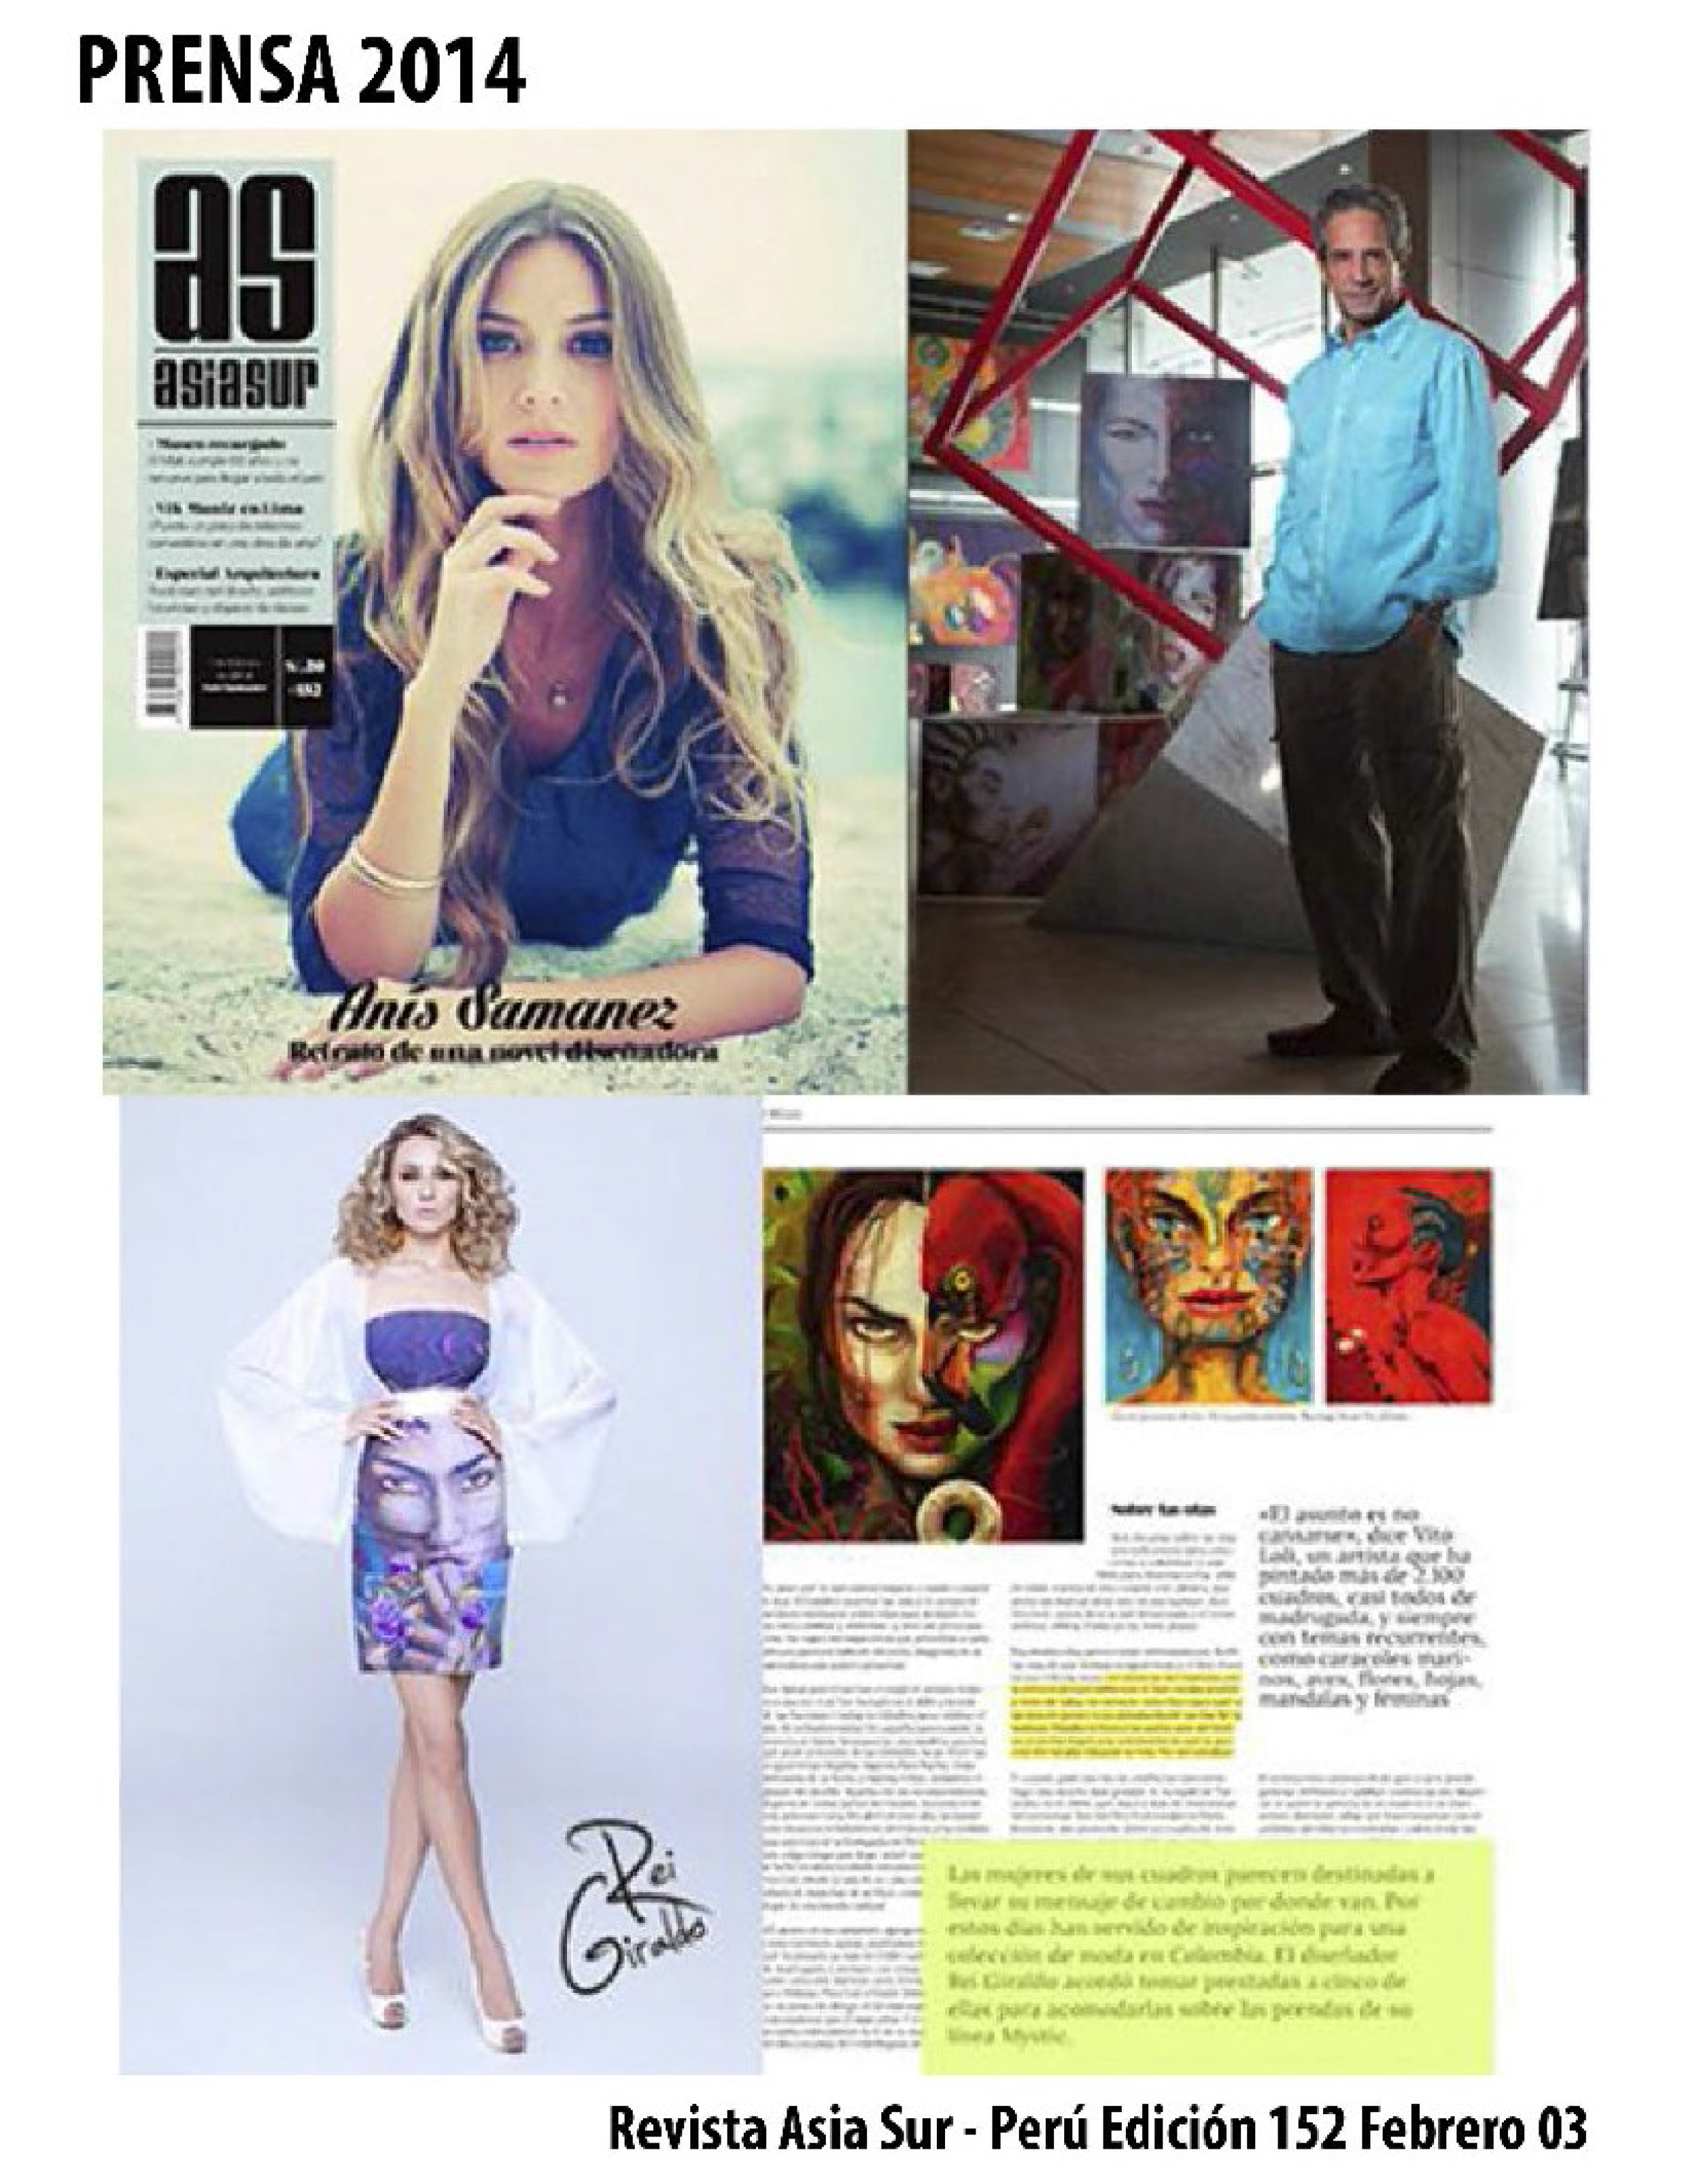 AS_ASIASUR_MAGAZINE_PERU_REI_GIRALDO_VITO_LOLI_PRESS_PRENSA